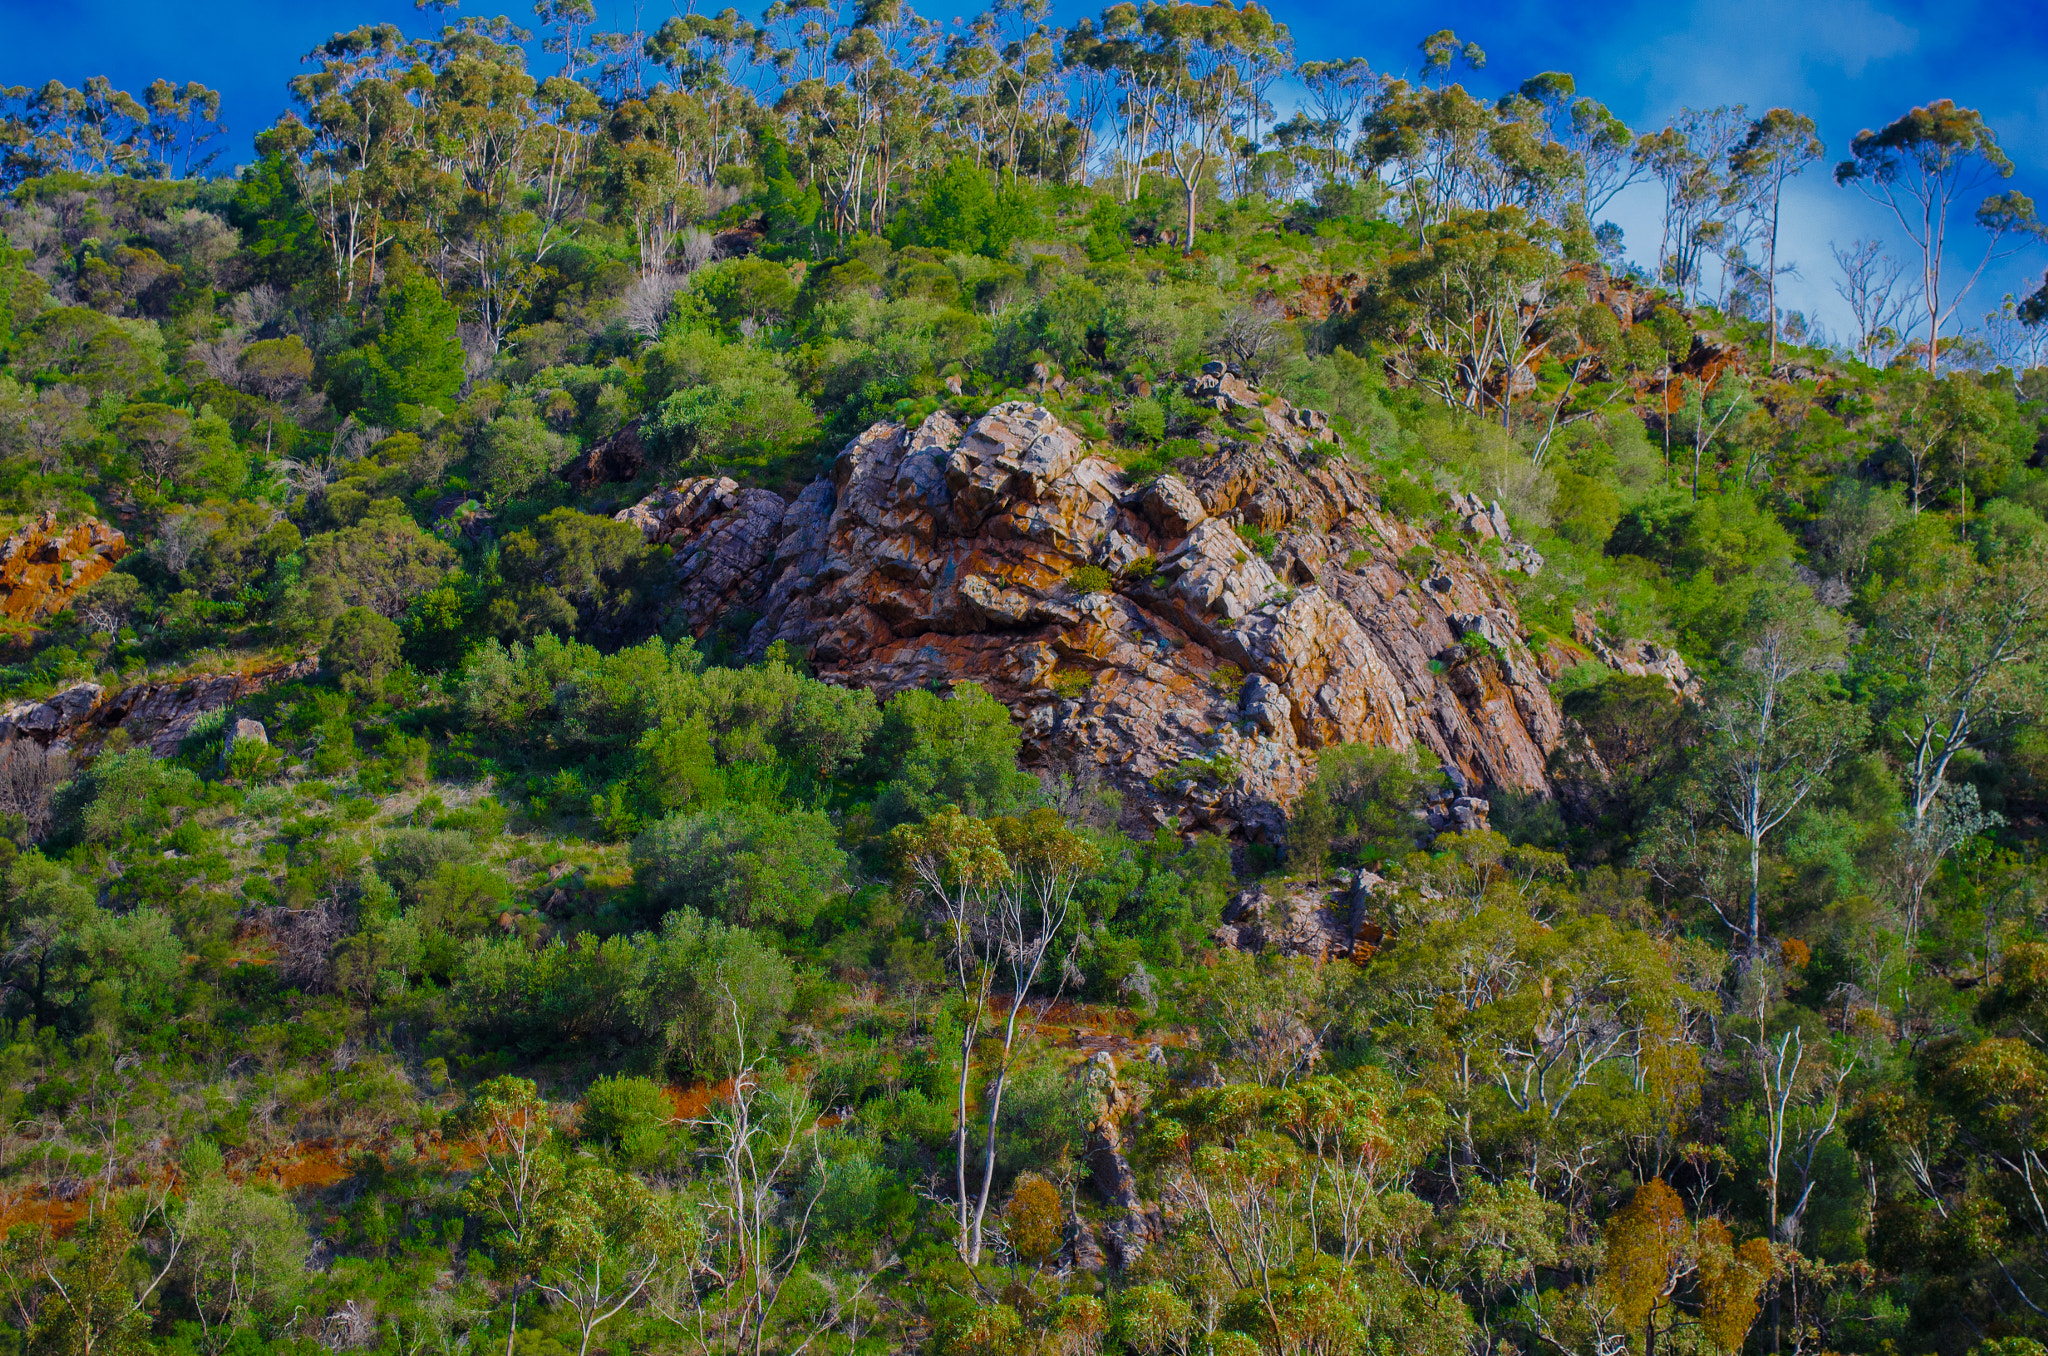 Photograph Morialta by Mick Wilson on 500px